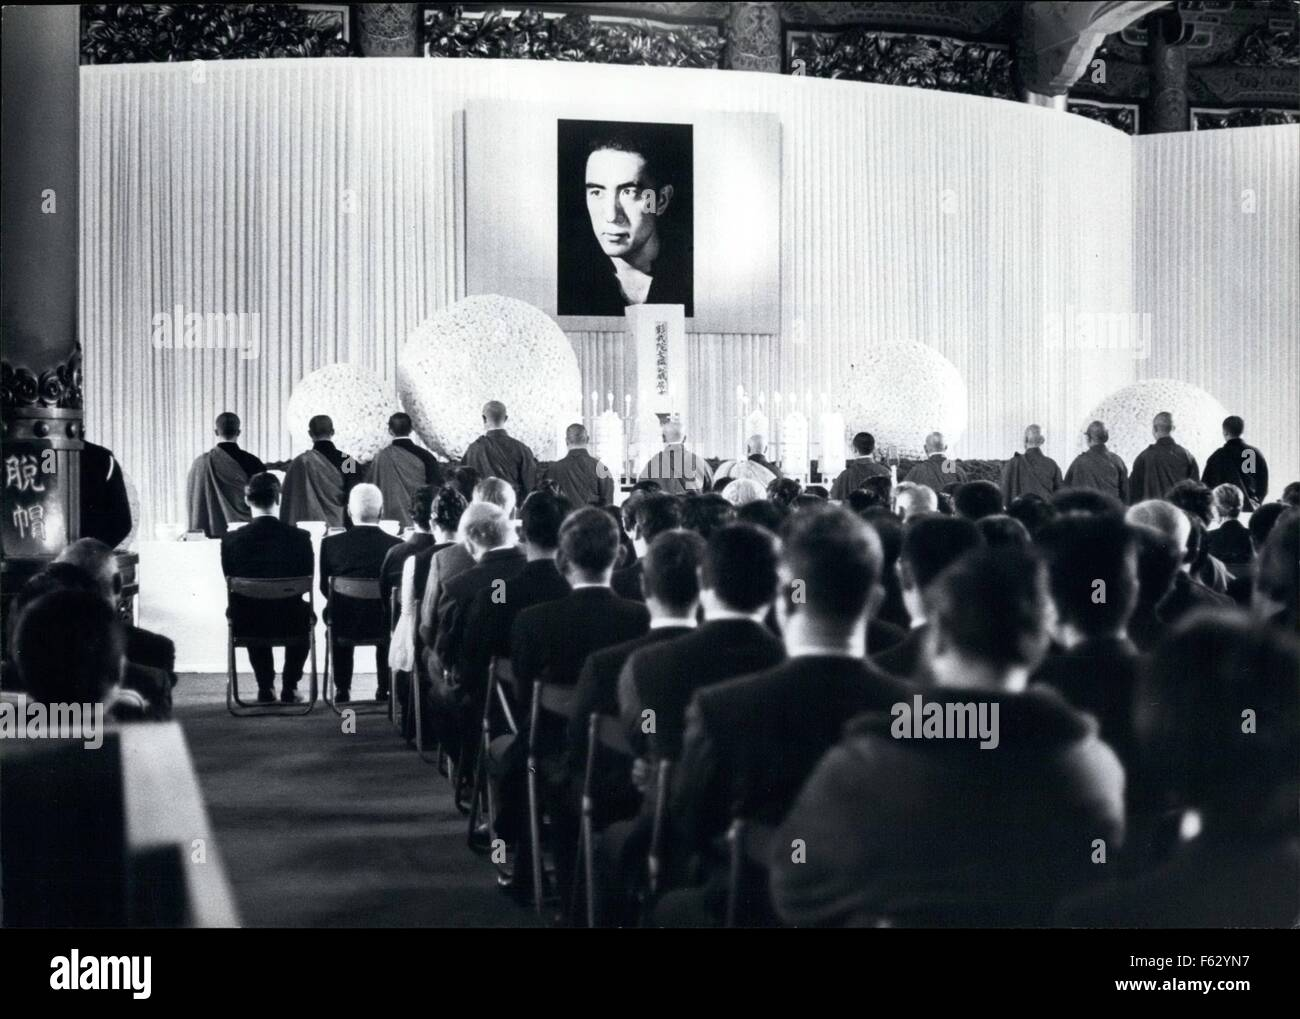 1968 - The Funeral service in Tokyo conducted by Buddhist priests of author Yukio Mishima, who committed hari - Stock Photo